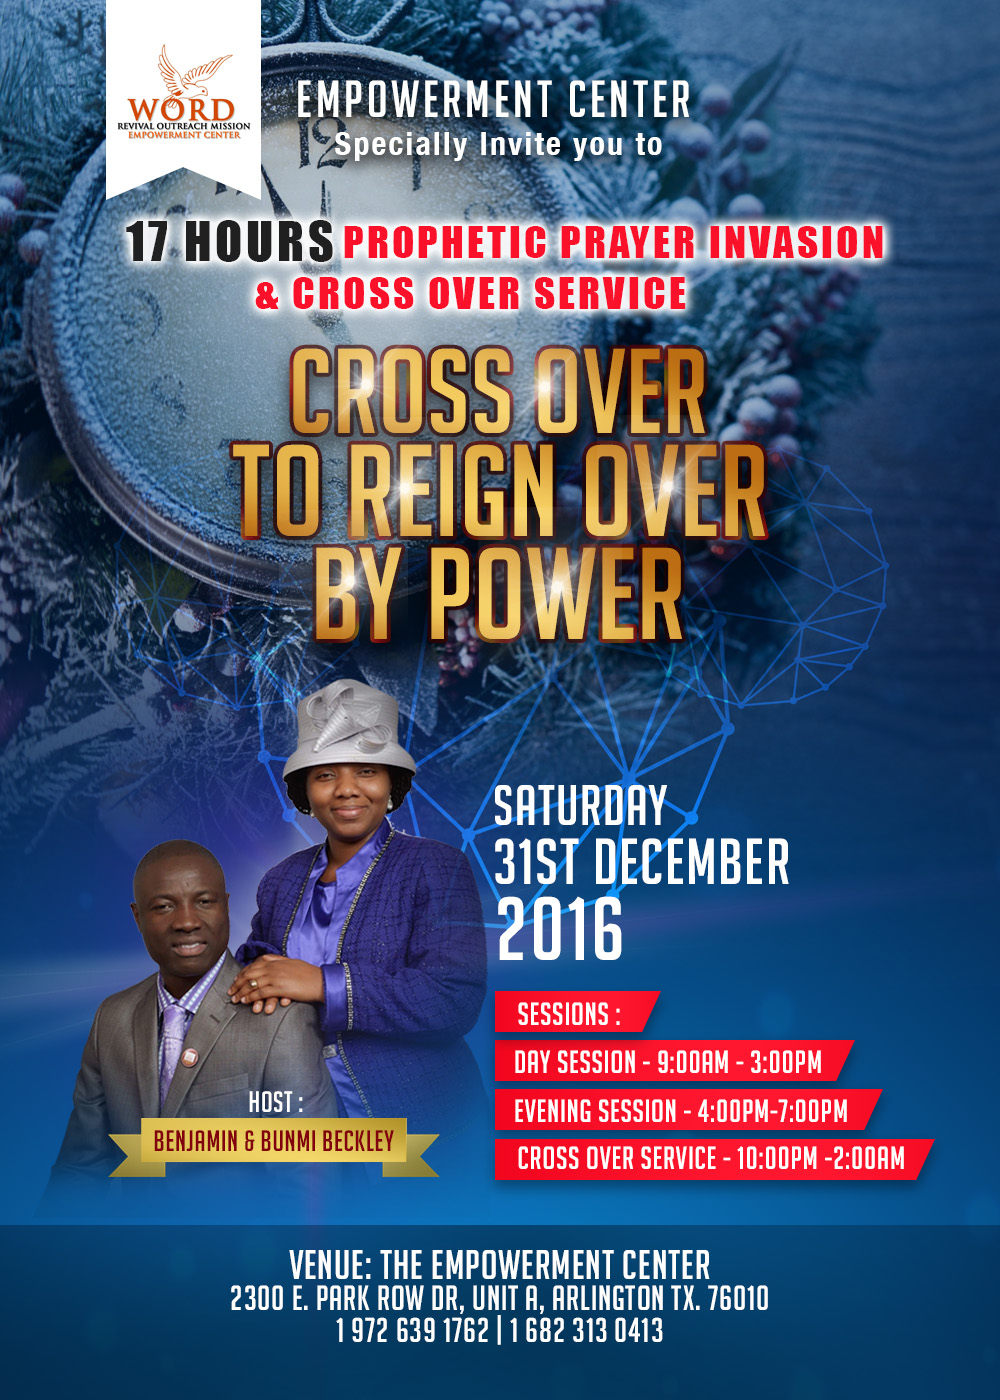 Word Revival Outreach Mission – 17 HOURS YEAR END PRAYER INVASION